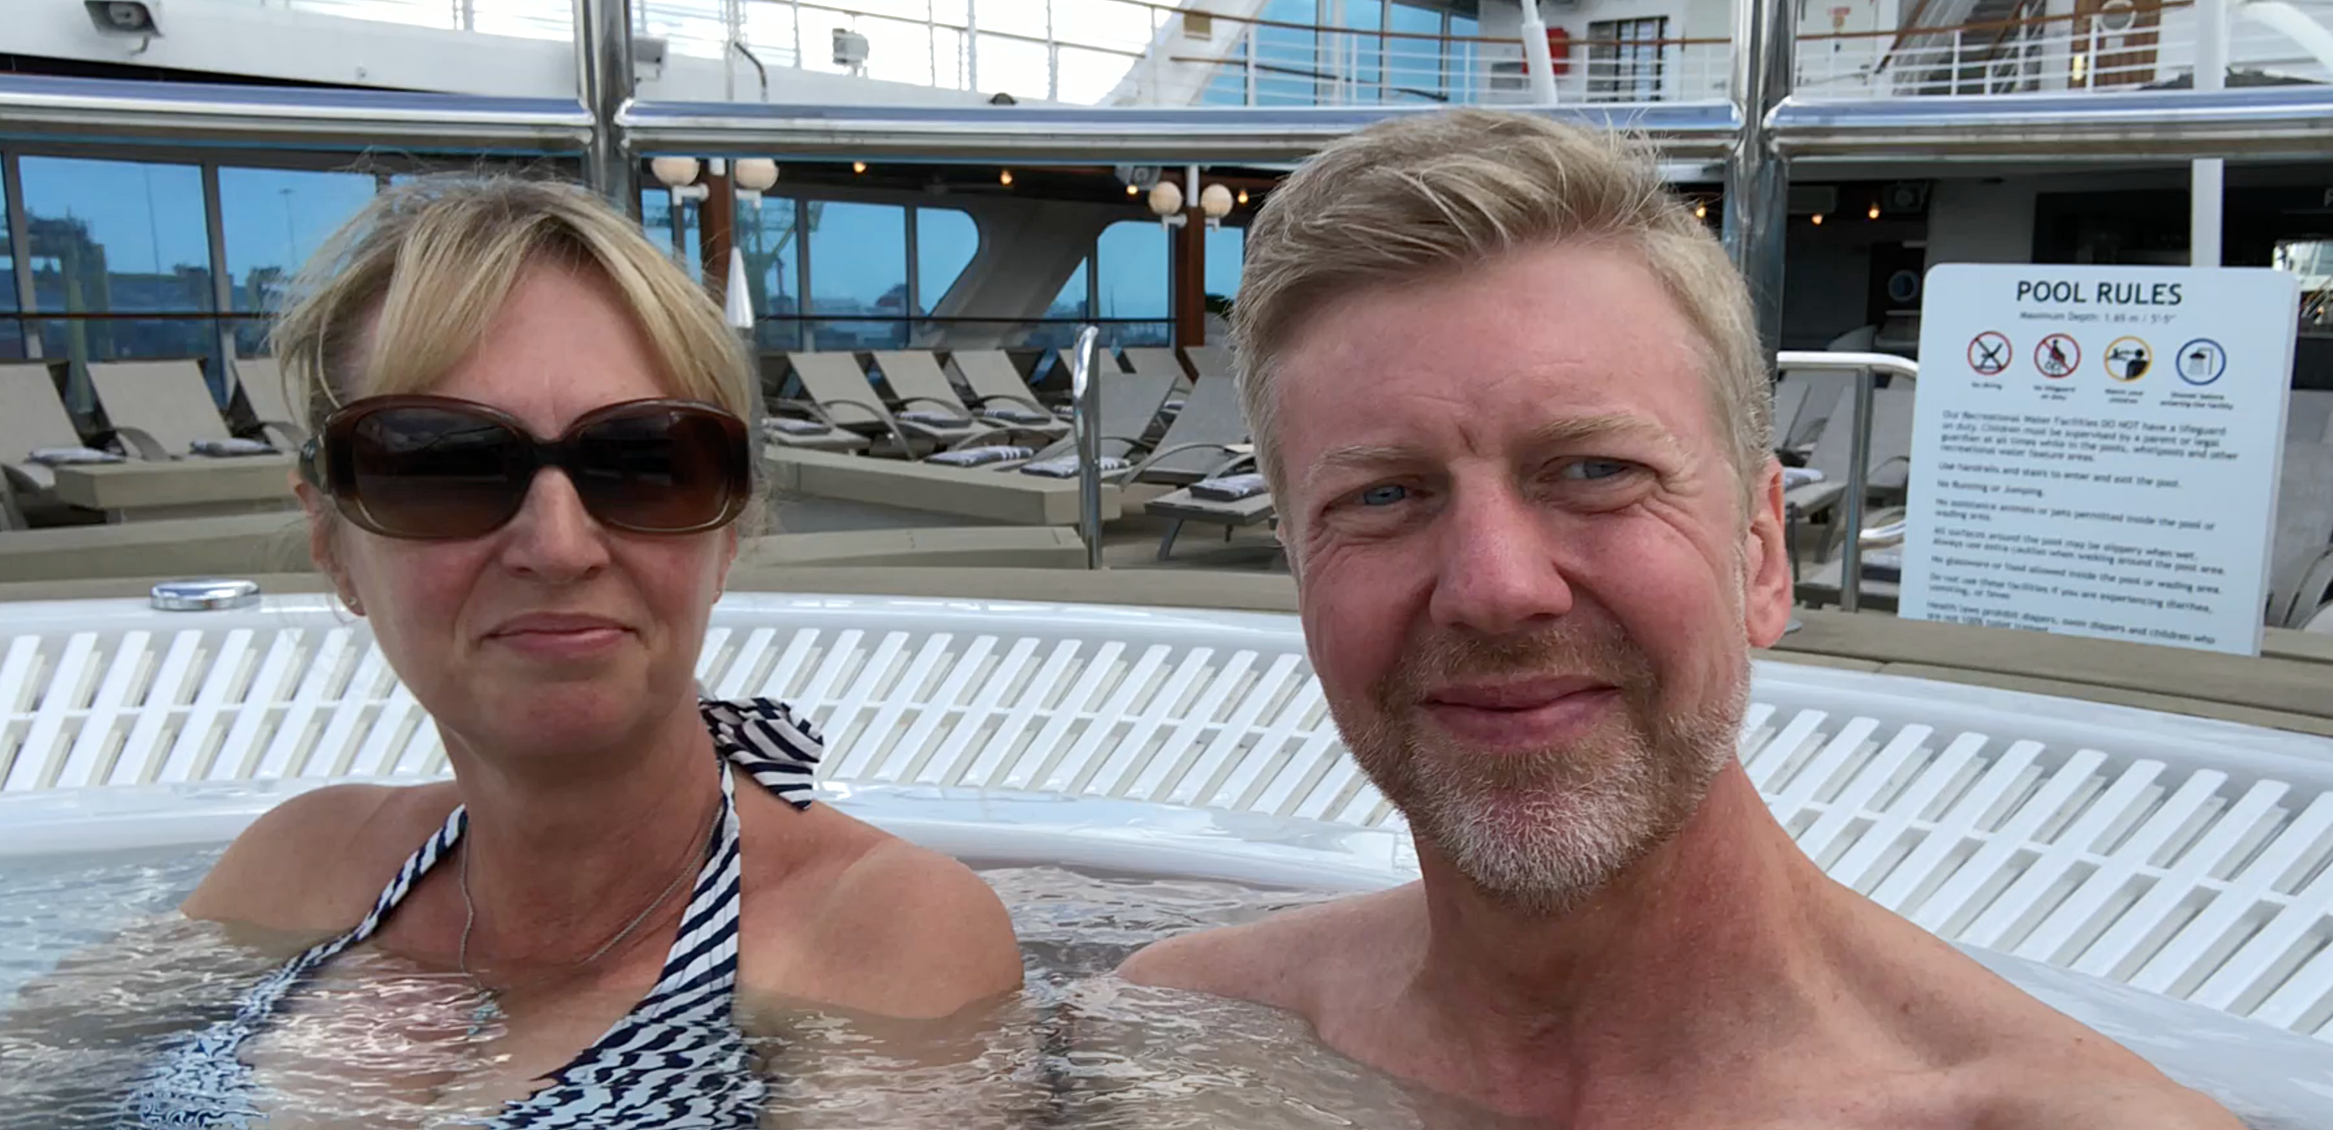 We braved the jacuzzi!